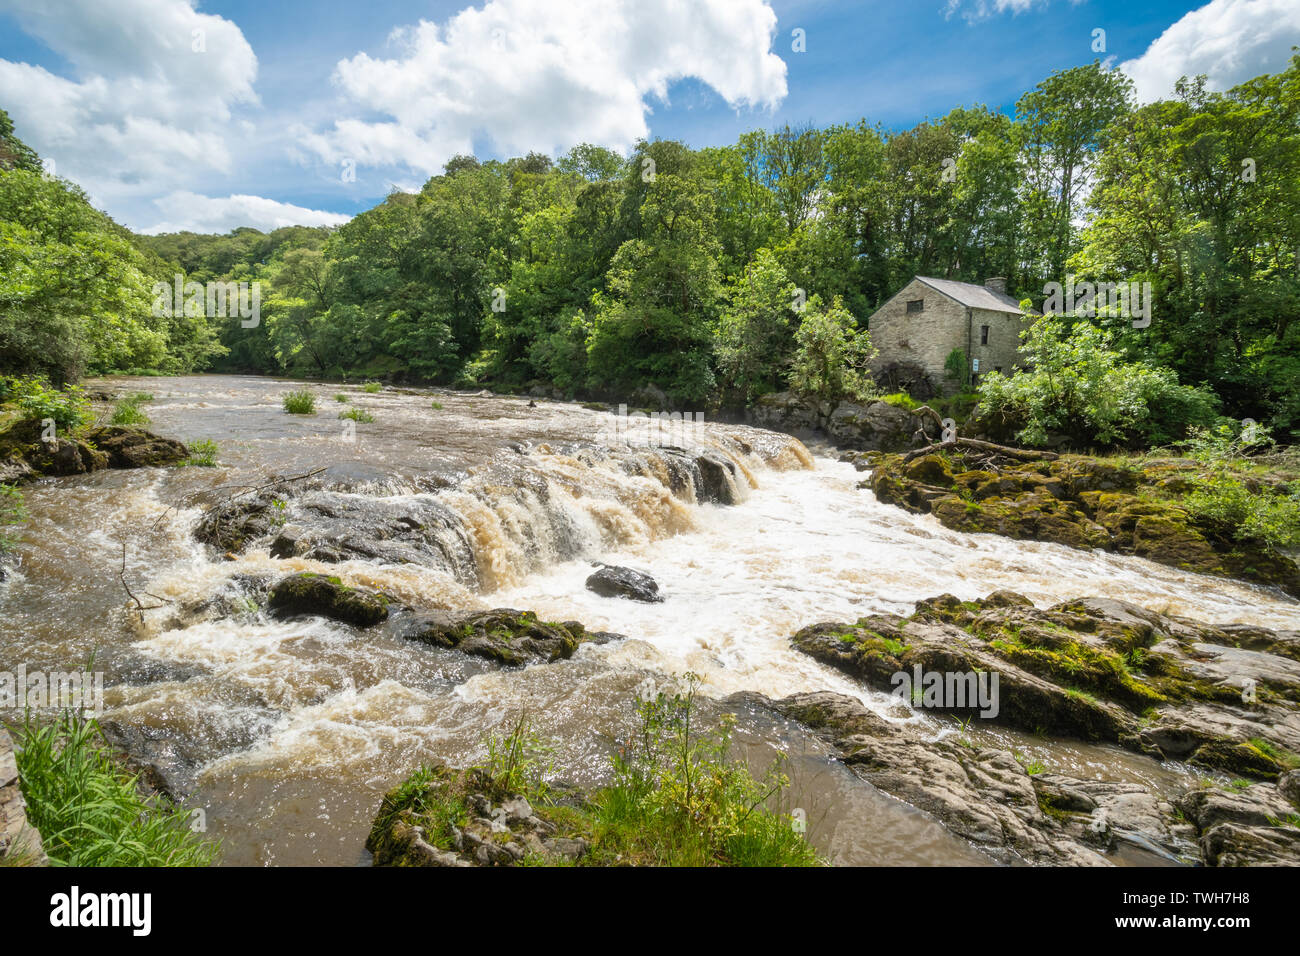 the-falls-waterfalls-on-the-river-teifi-at-the-village-of-cenarth-in-carmarthenshire-wales-uk-TWH7H8.jpg